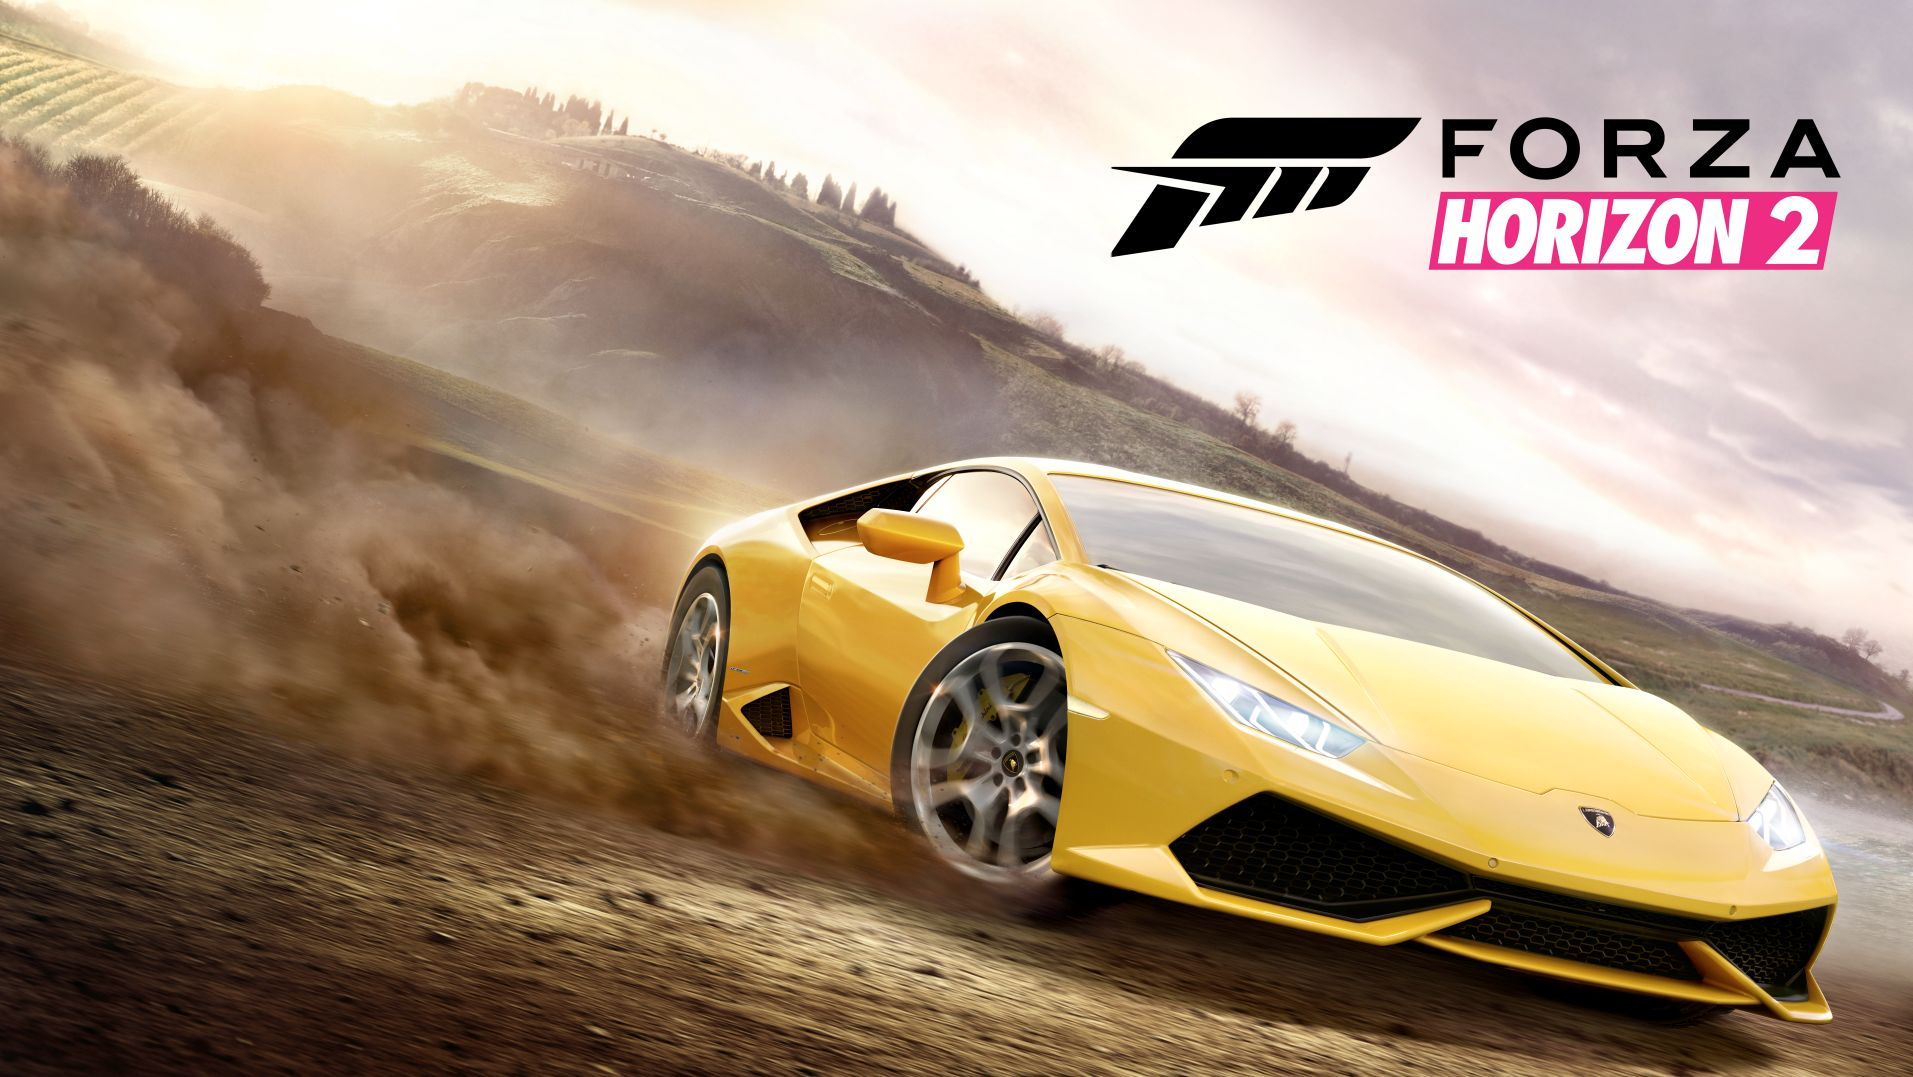 Forza Horizon 2 review – super off-road racing